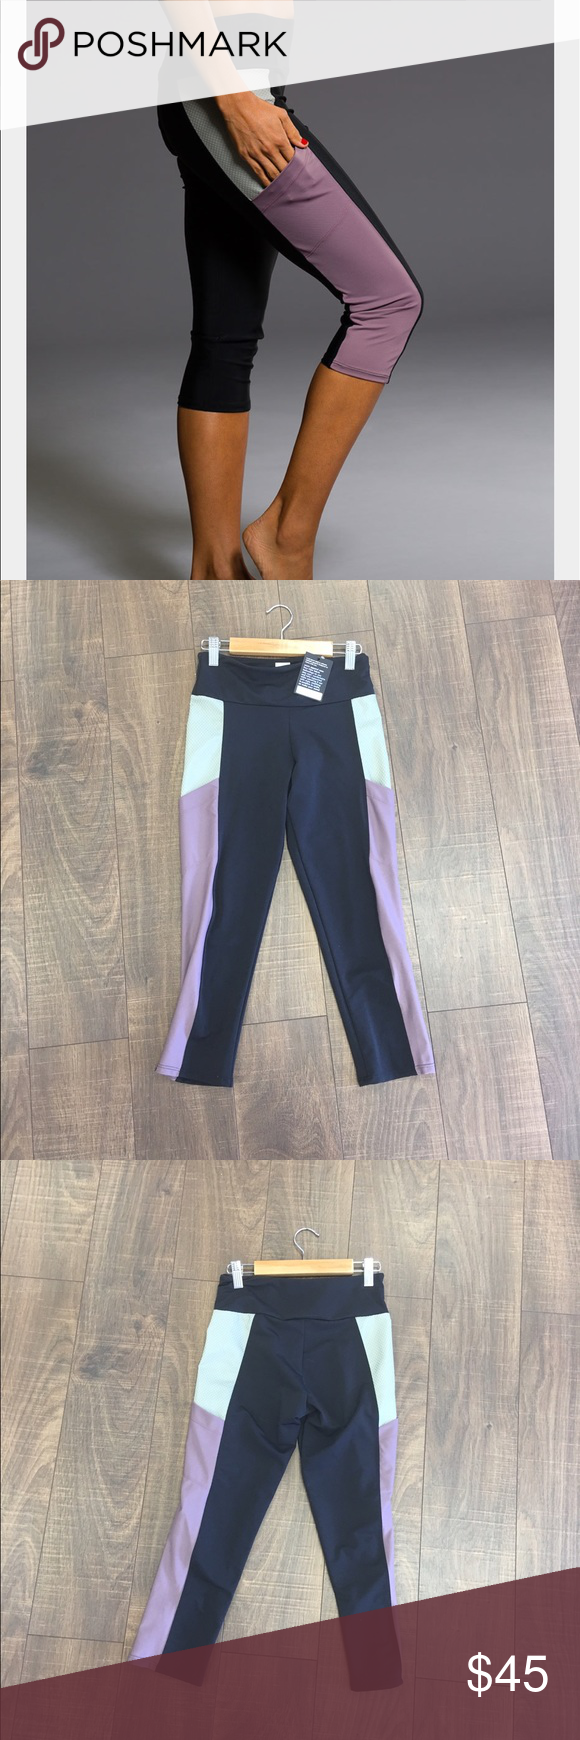 Onzie Pocket Capri in Purple Haze Combo Keep your valuables close and your style points high in the Pocket Yoga Capri. This tight features two side pockets on shorter capri-style legs for a sporty look. Color-blocked paneling adds to the this already-fun look. Onzie Pants Capris